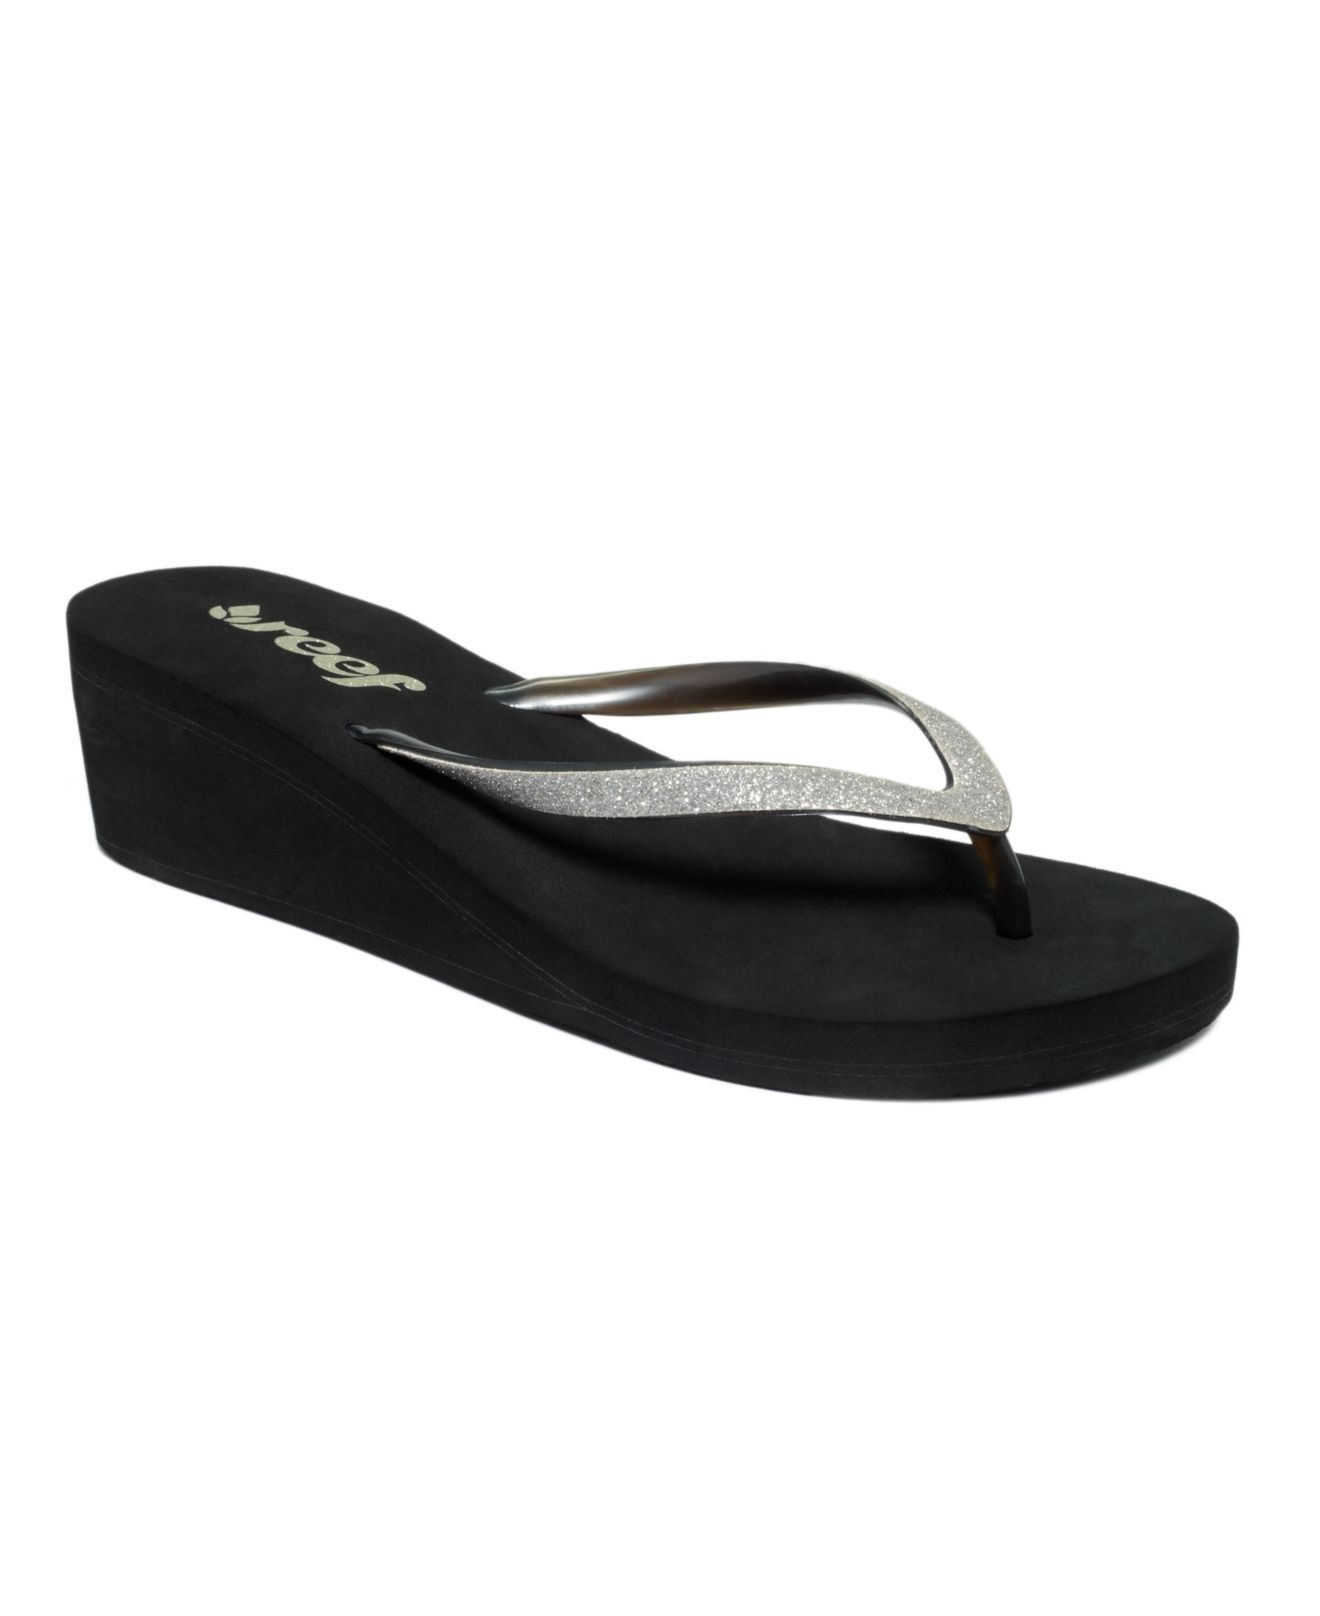 616cea5e40 Reef Shoes, Krystal Star Wedge Thong Sandals - Sandals - Shoes - Macy's